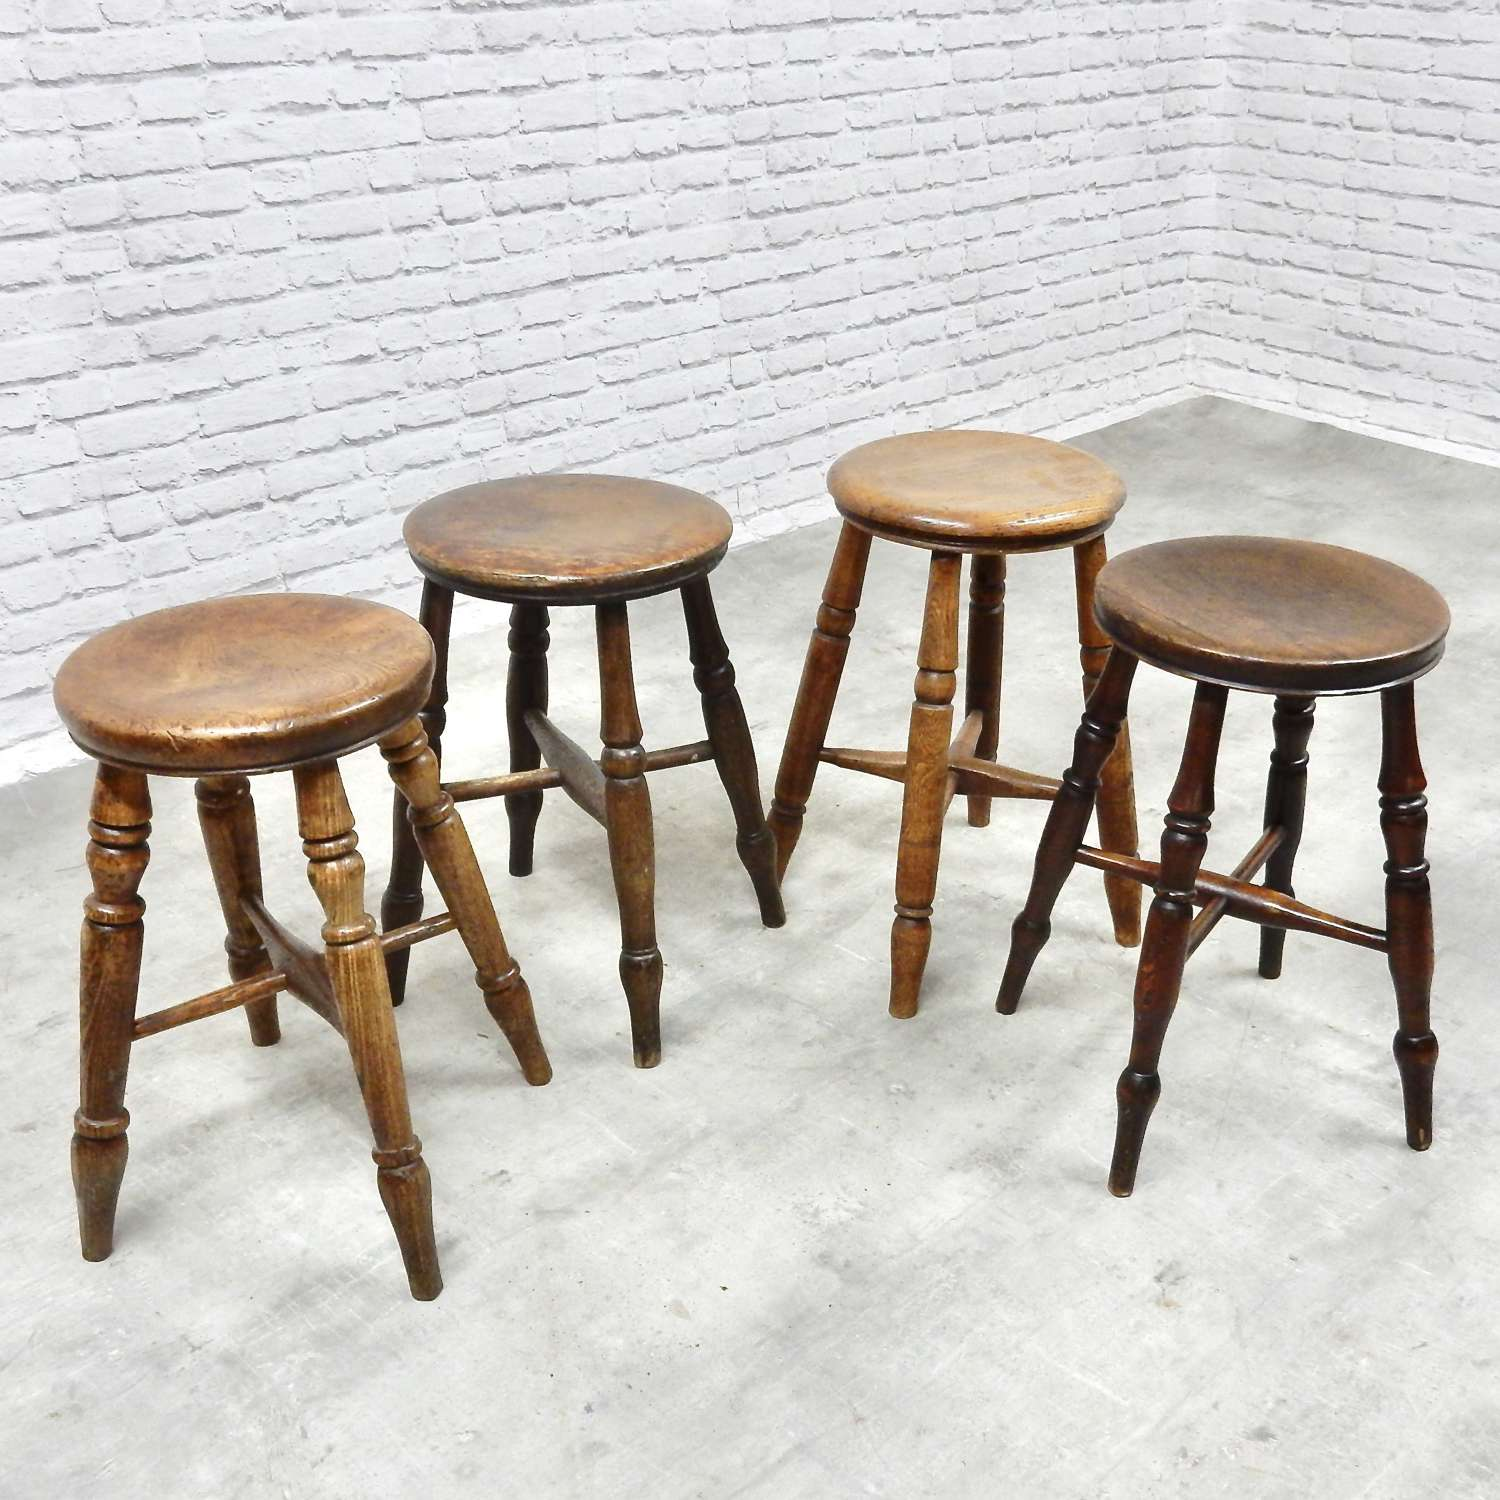 Group of 4 C19th Pub Stools